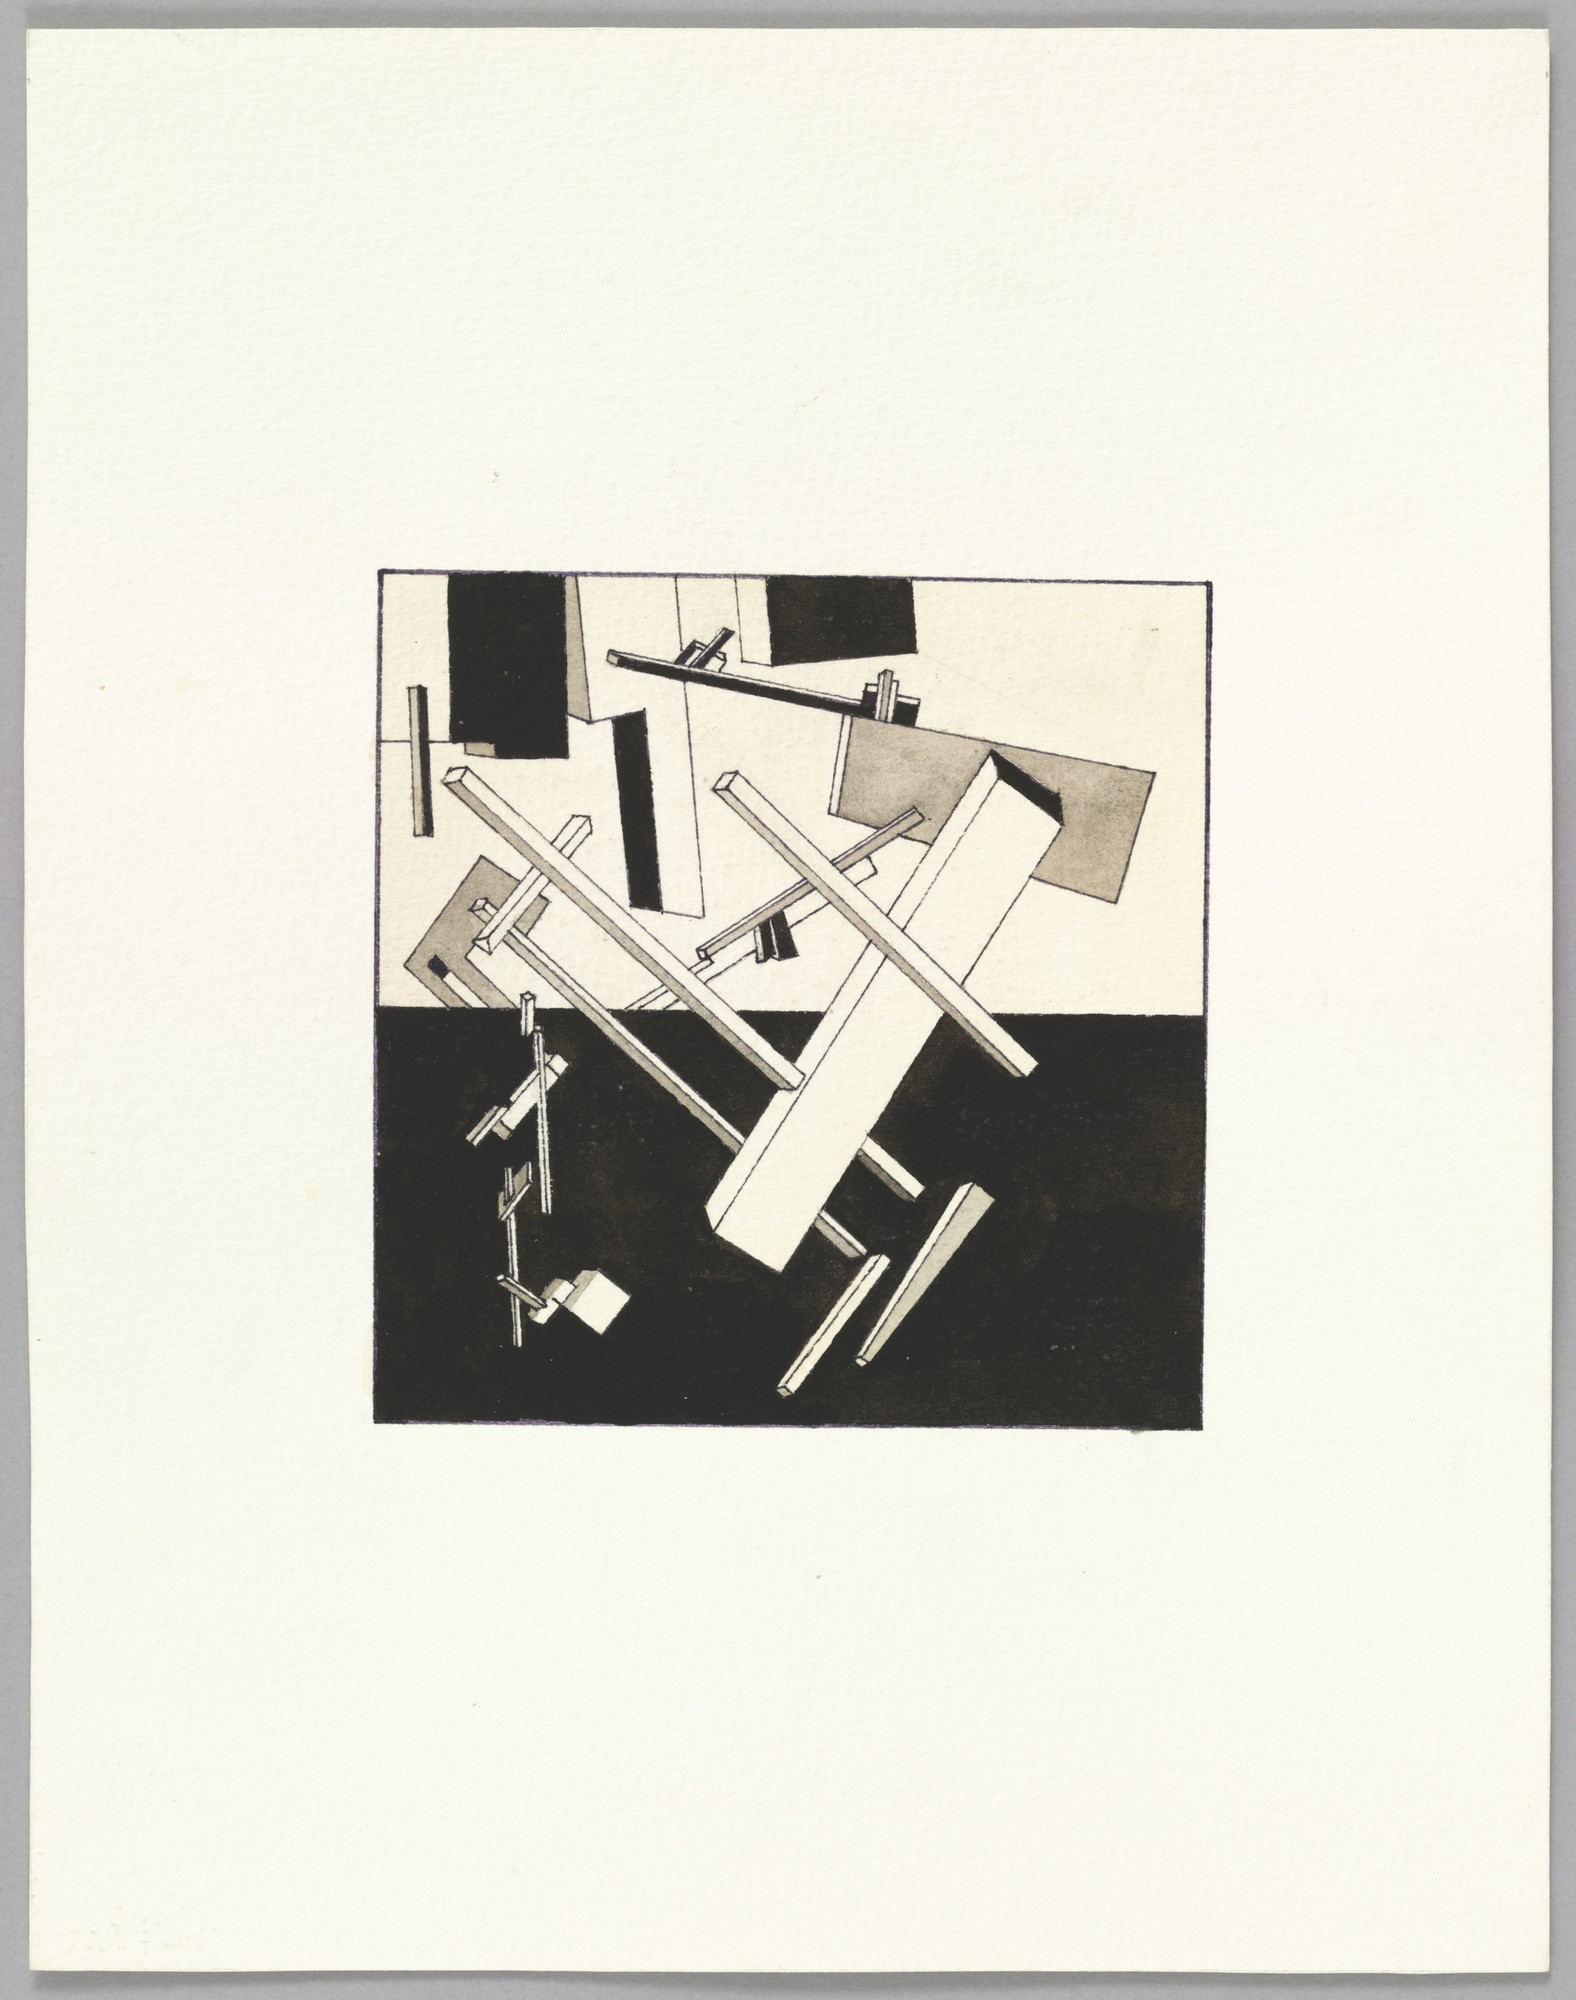 Sherrie Levine. After El Lissitzky. 1984